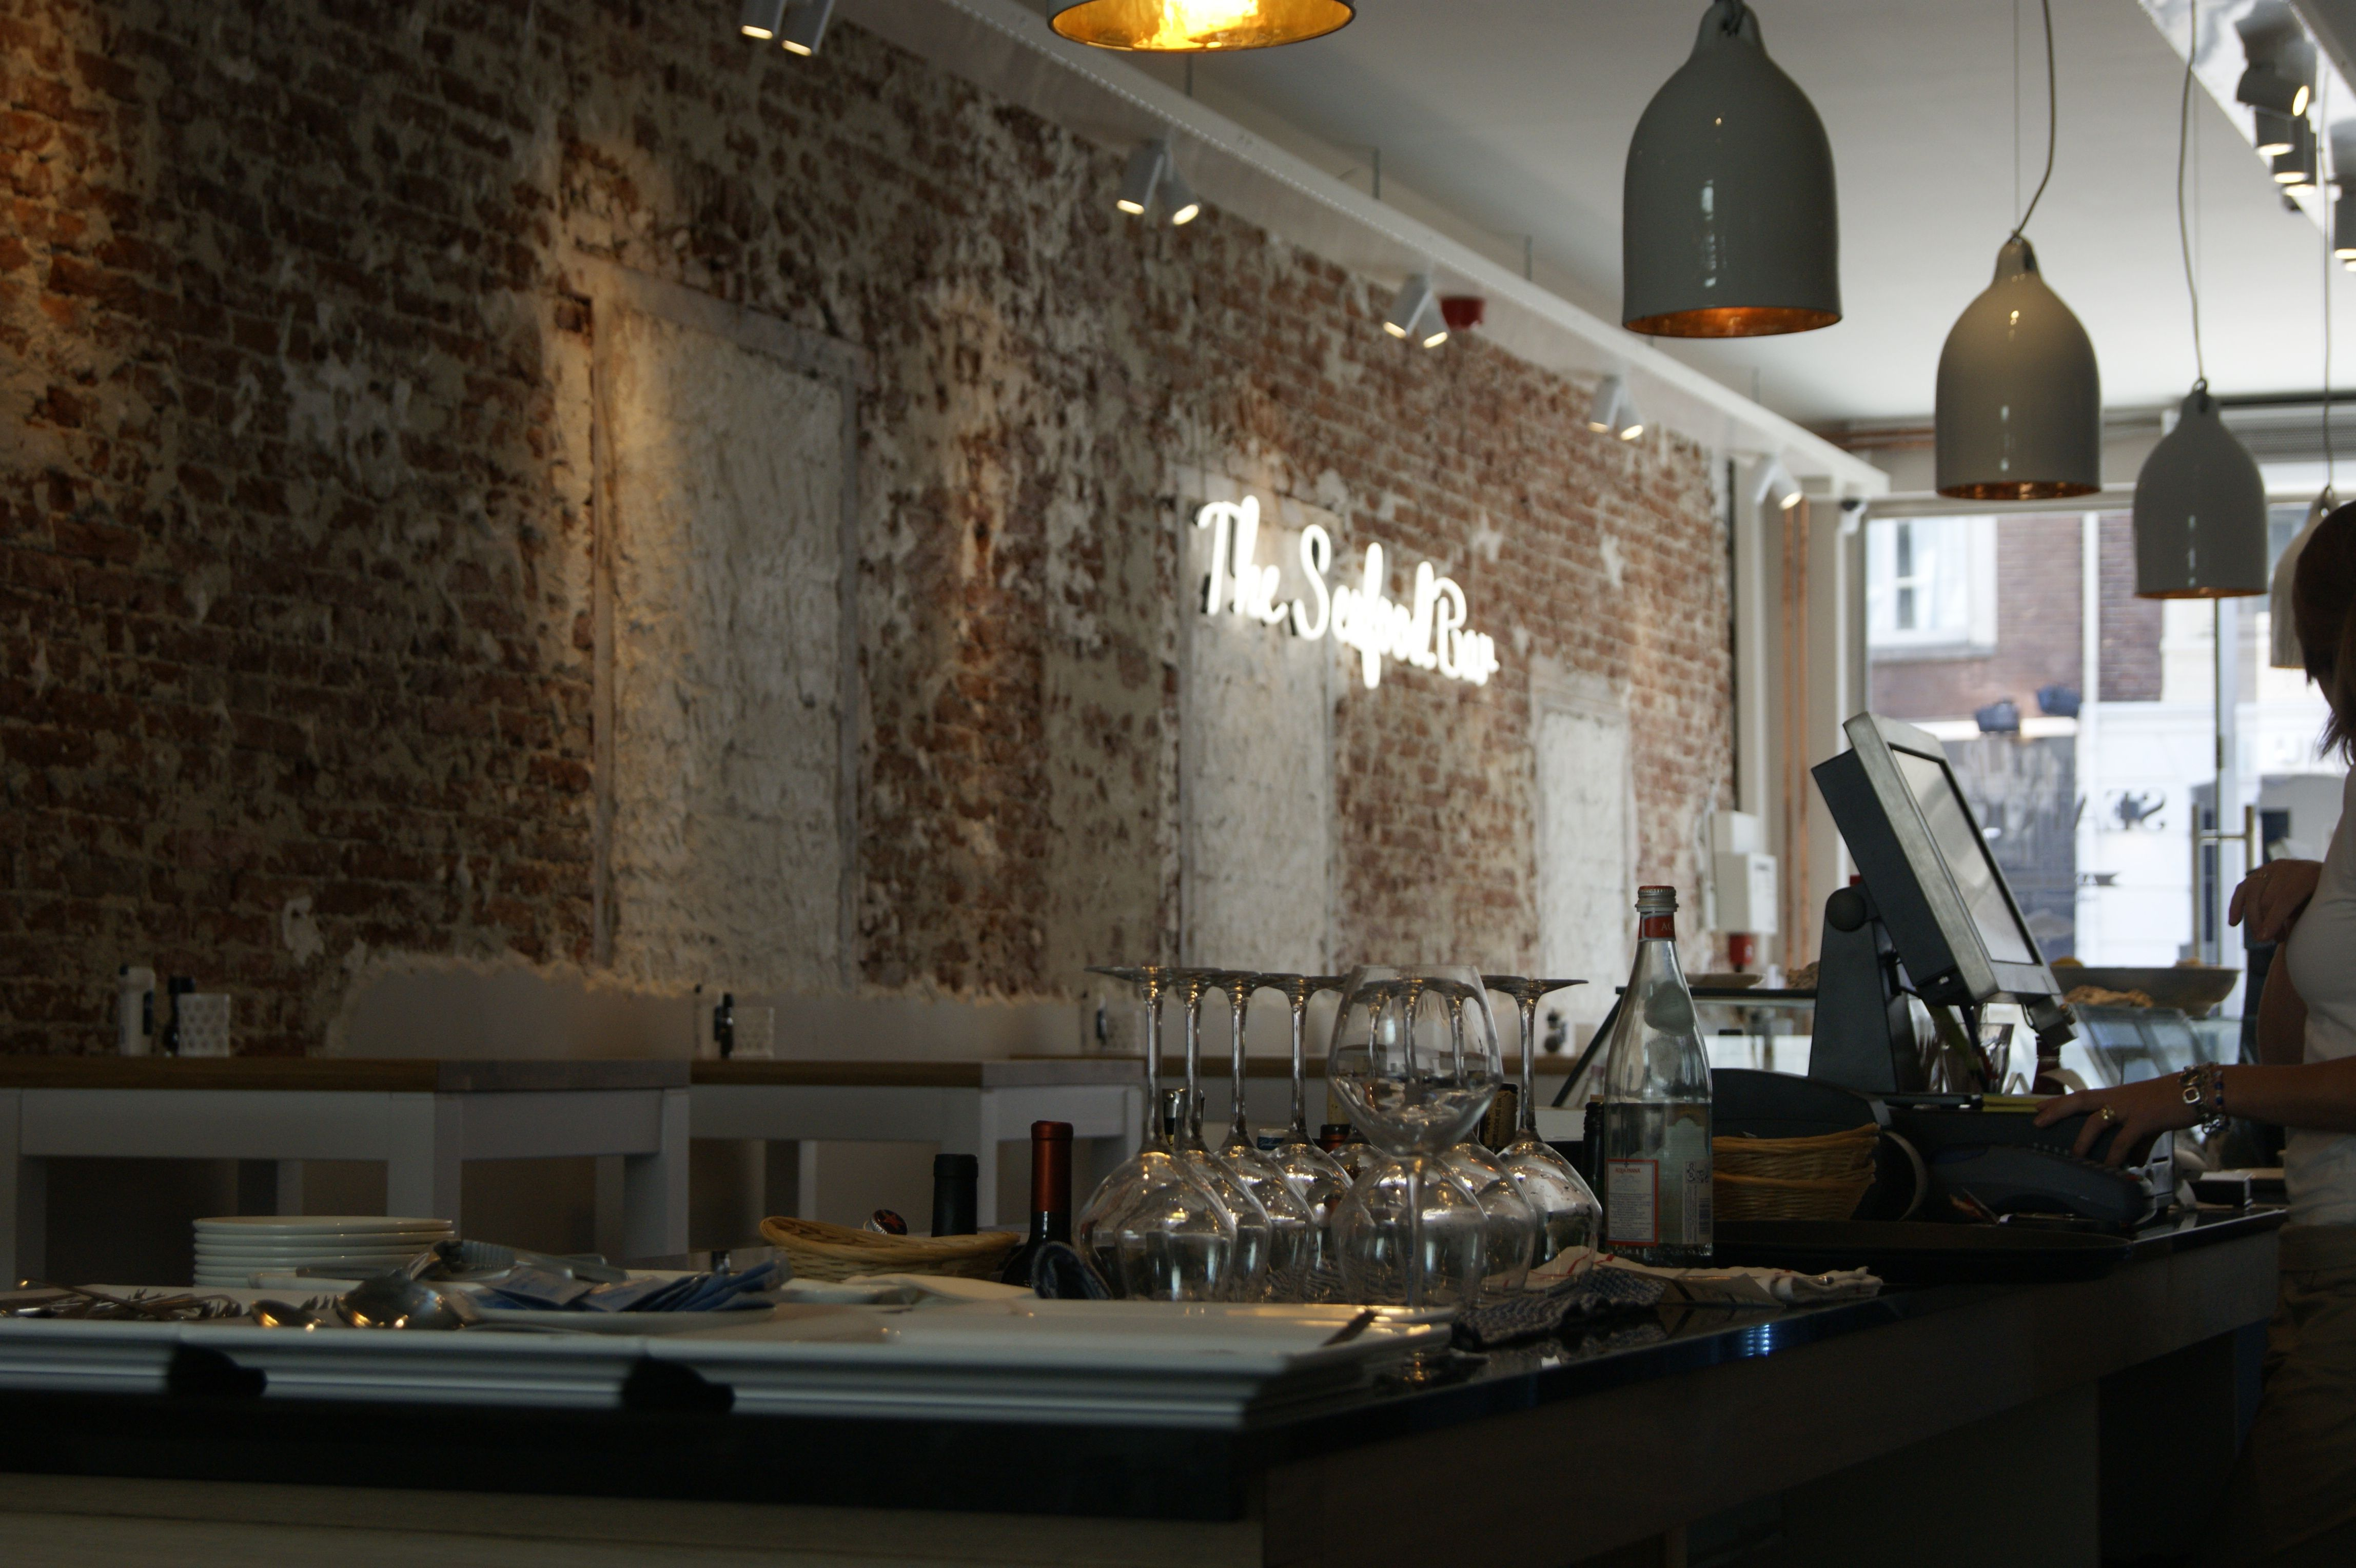 wine bar Interior design | The Seafood Bar | delicacy journey | Bar ...